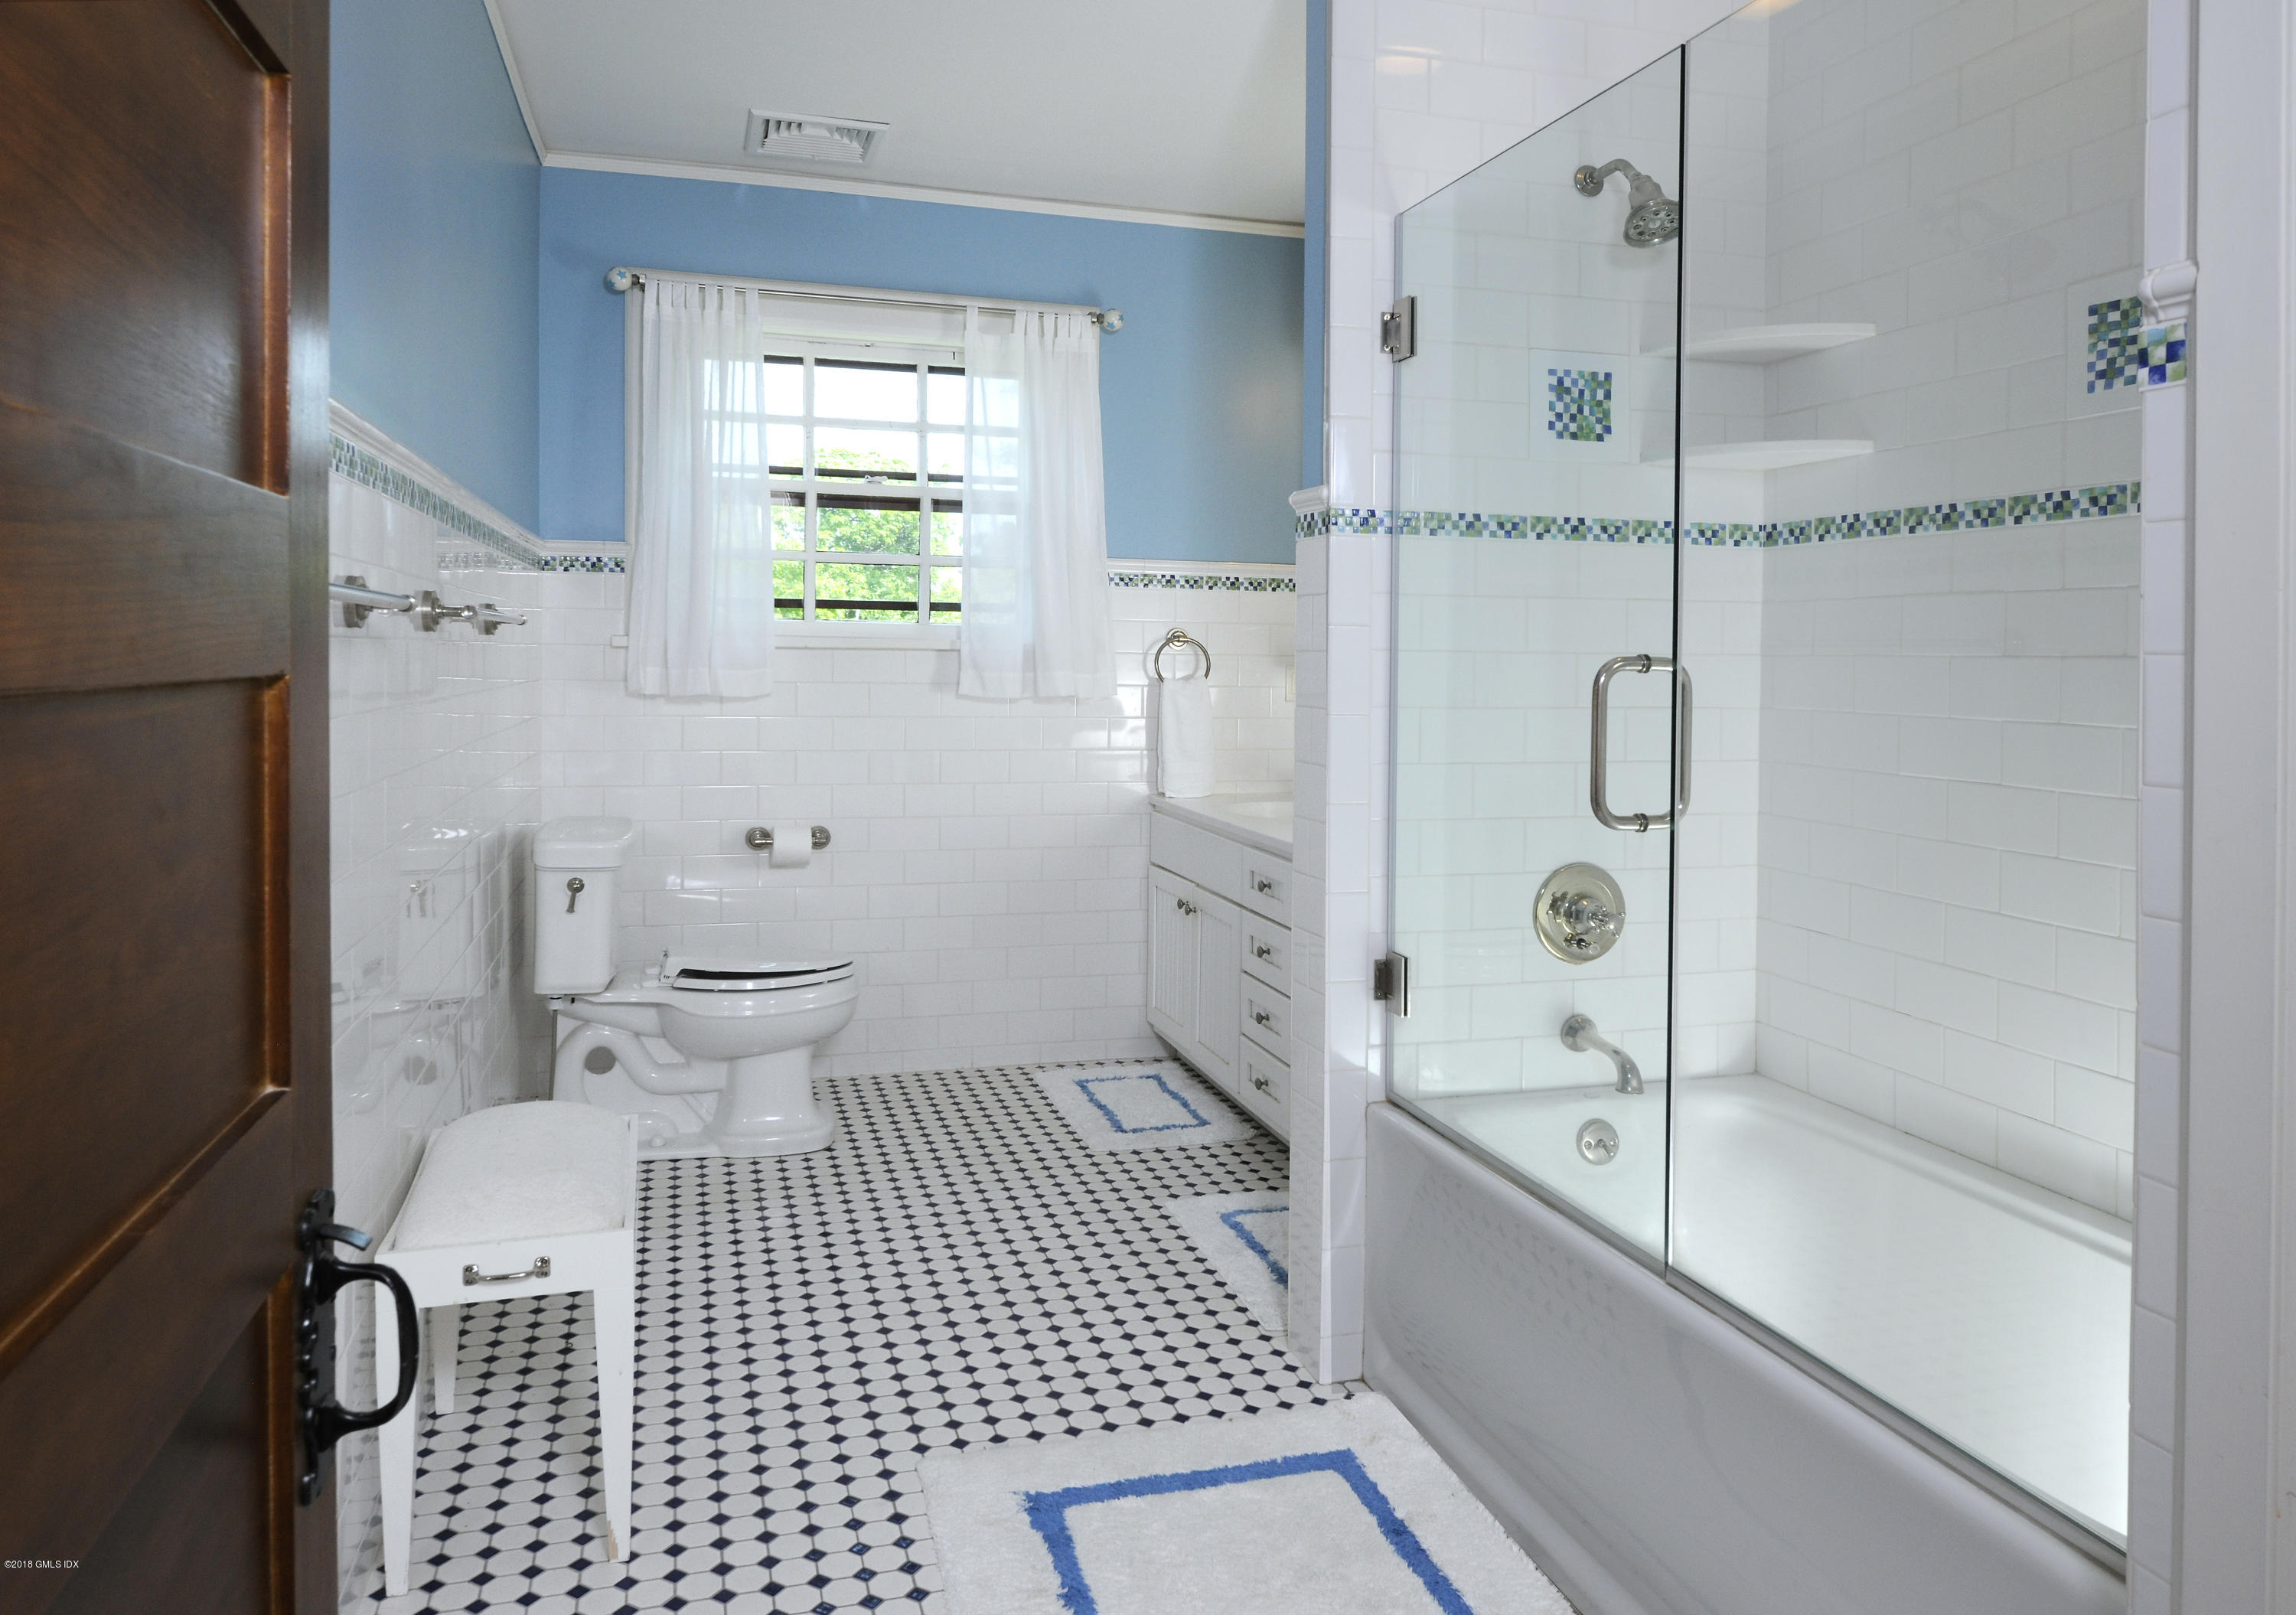 5 Ledge Road,Old Greenwich,Connecticut 06870,6 Bedrooms Bedrooms,4 BathroomsBathrooms,Single family,Ledge,105780